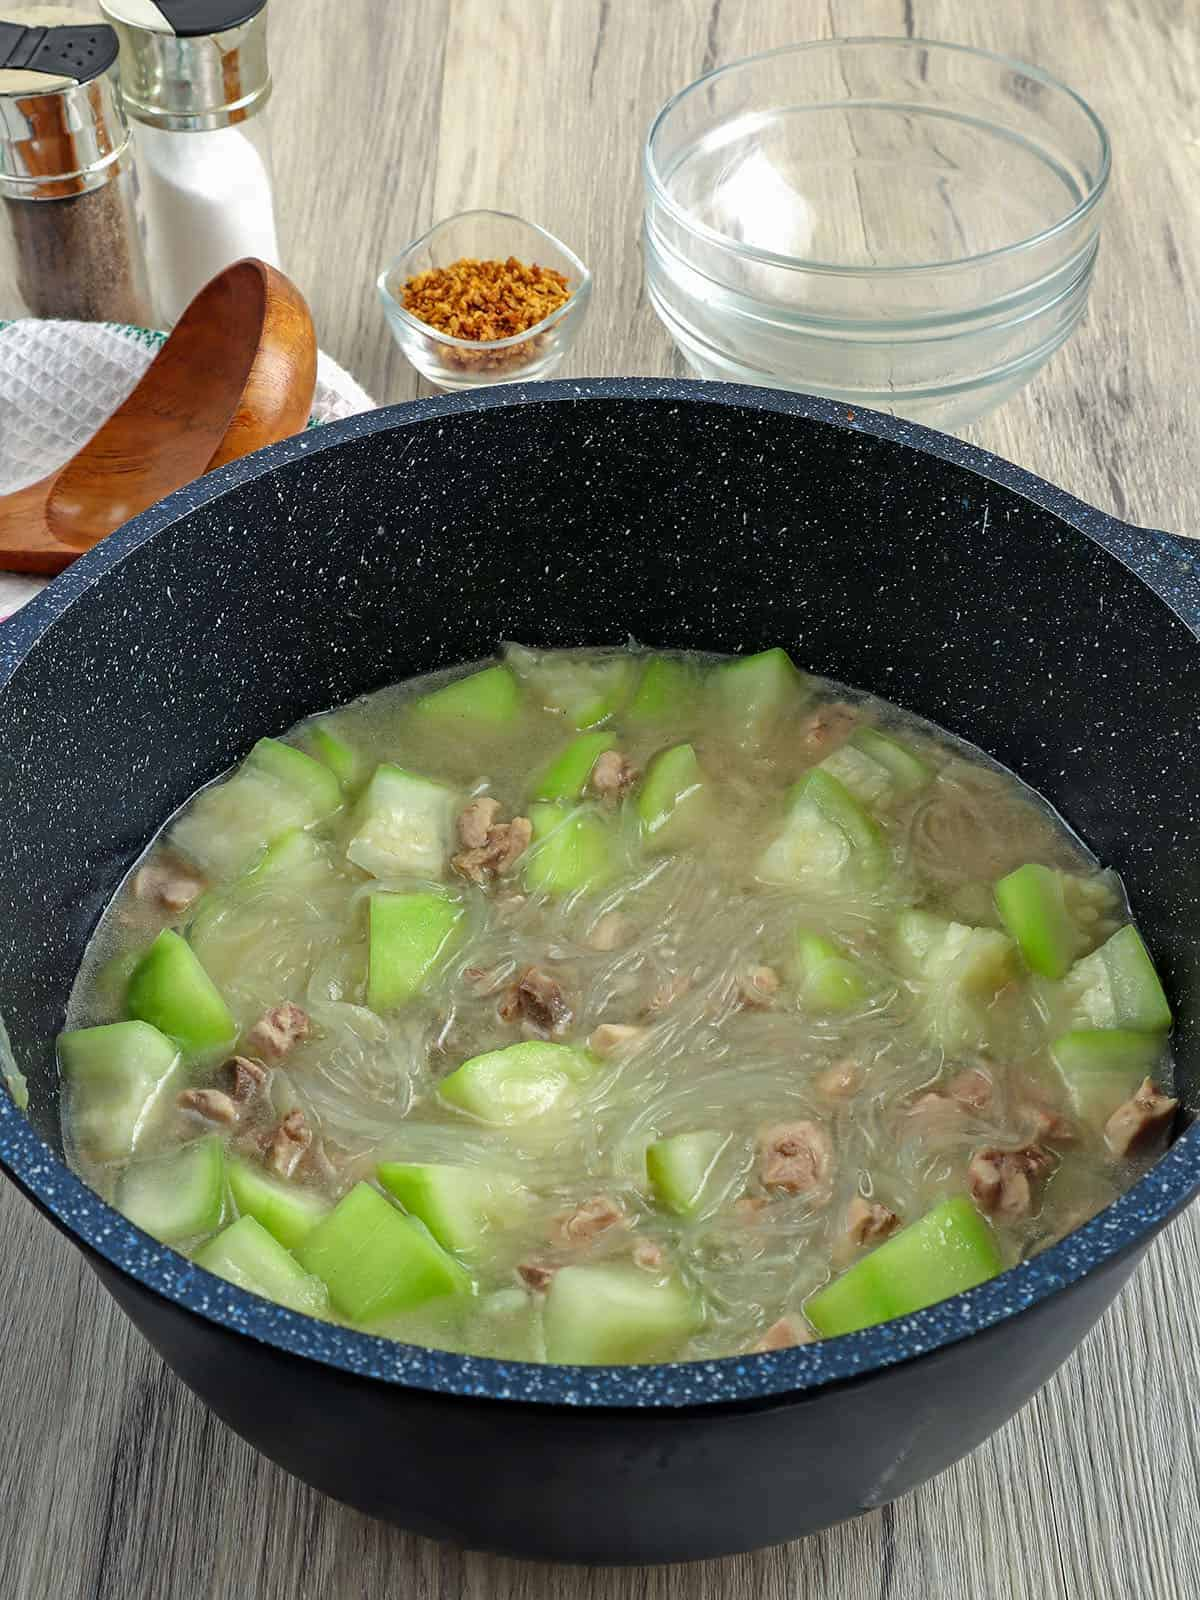 Sotanghon at Upo Soup cooked in a pot